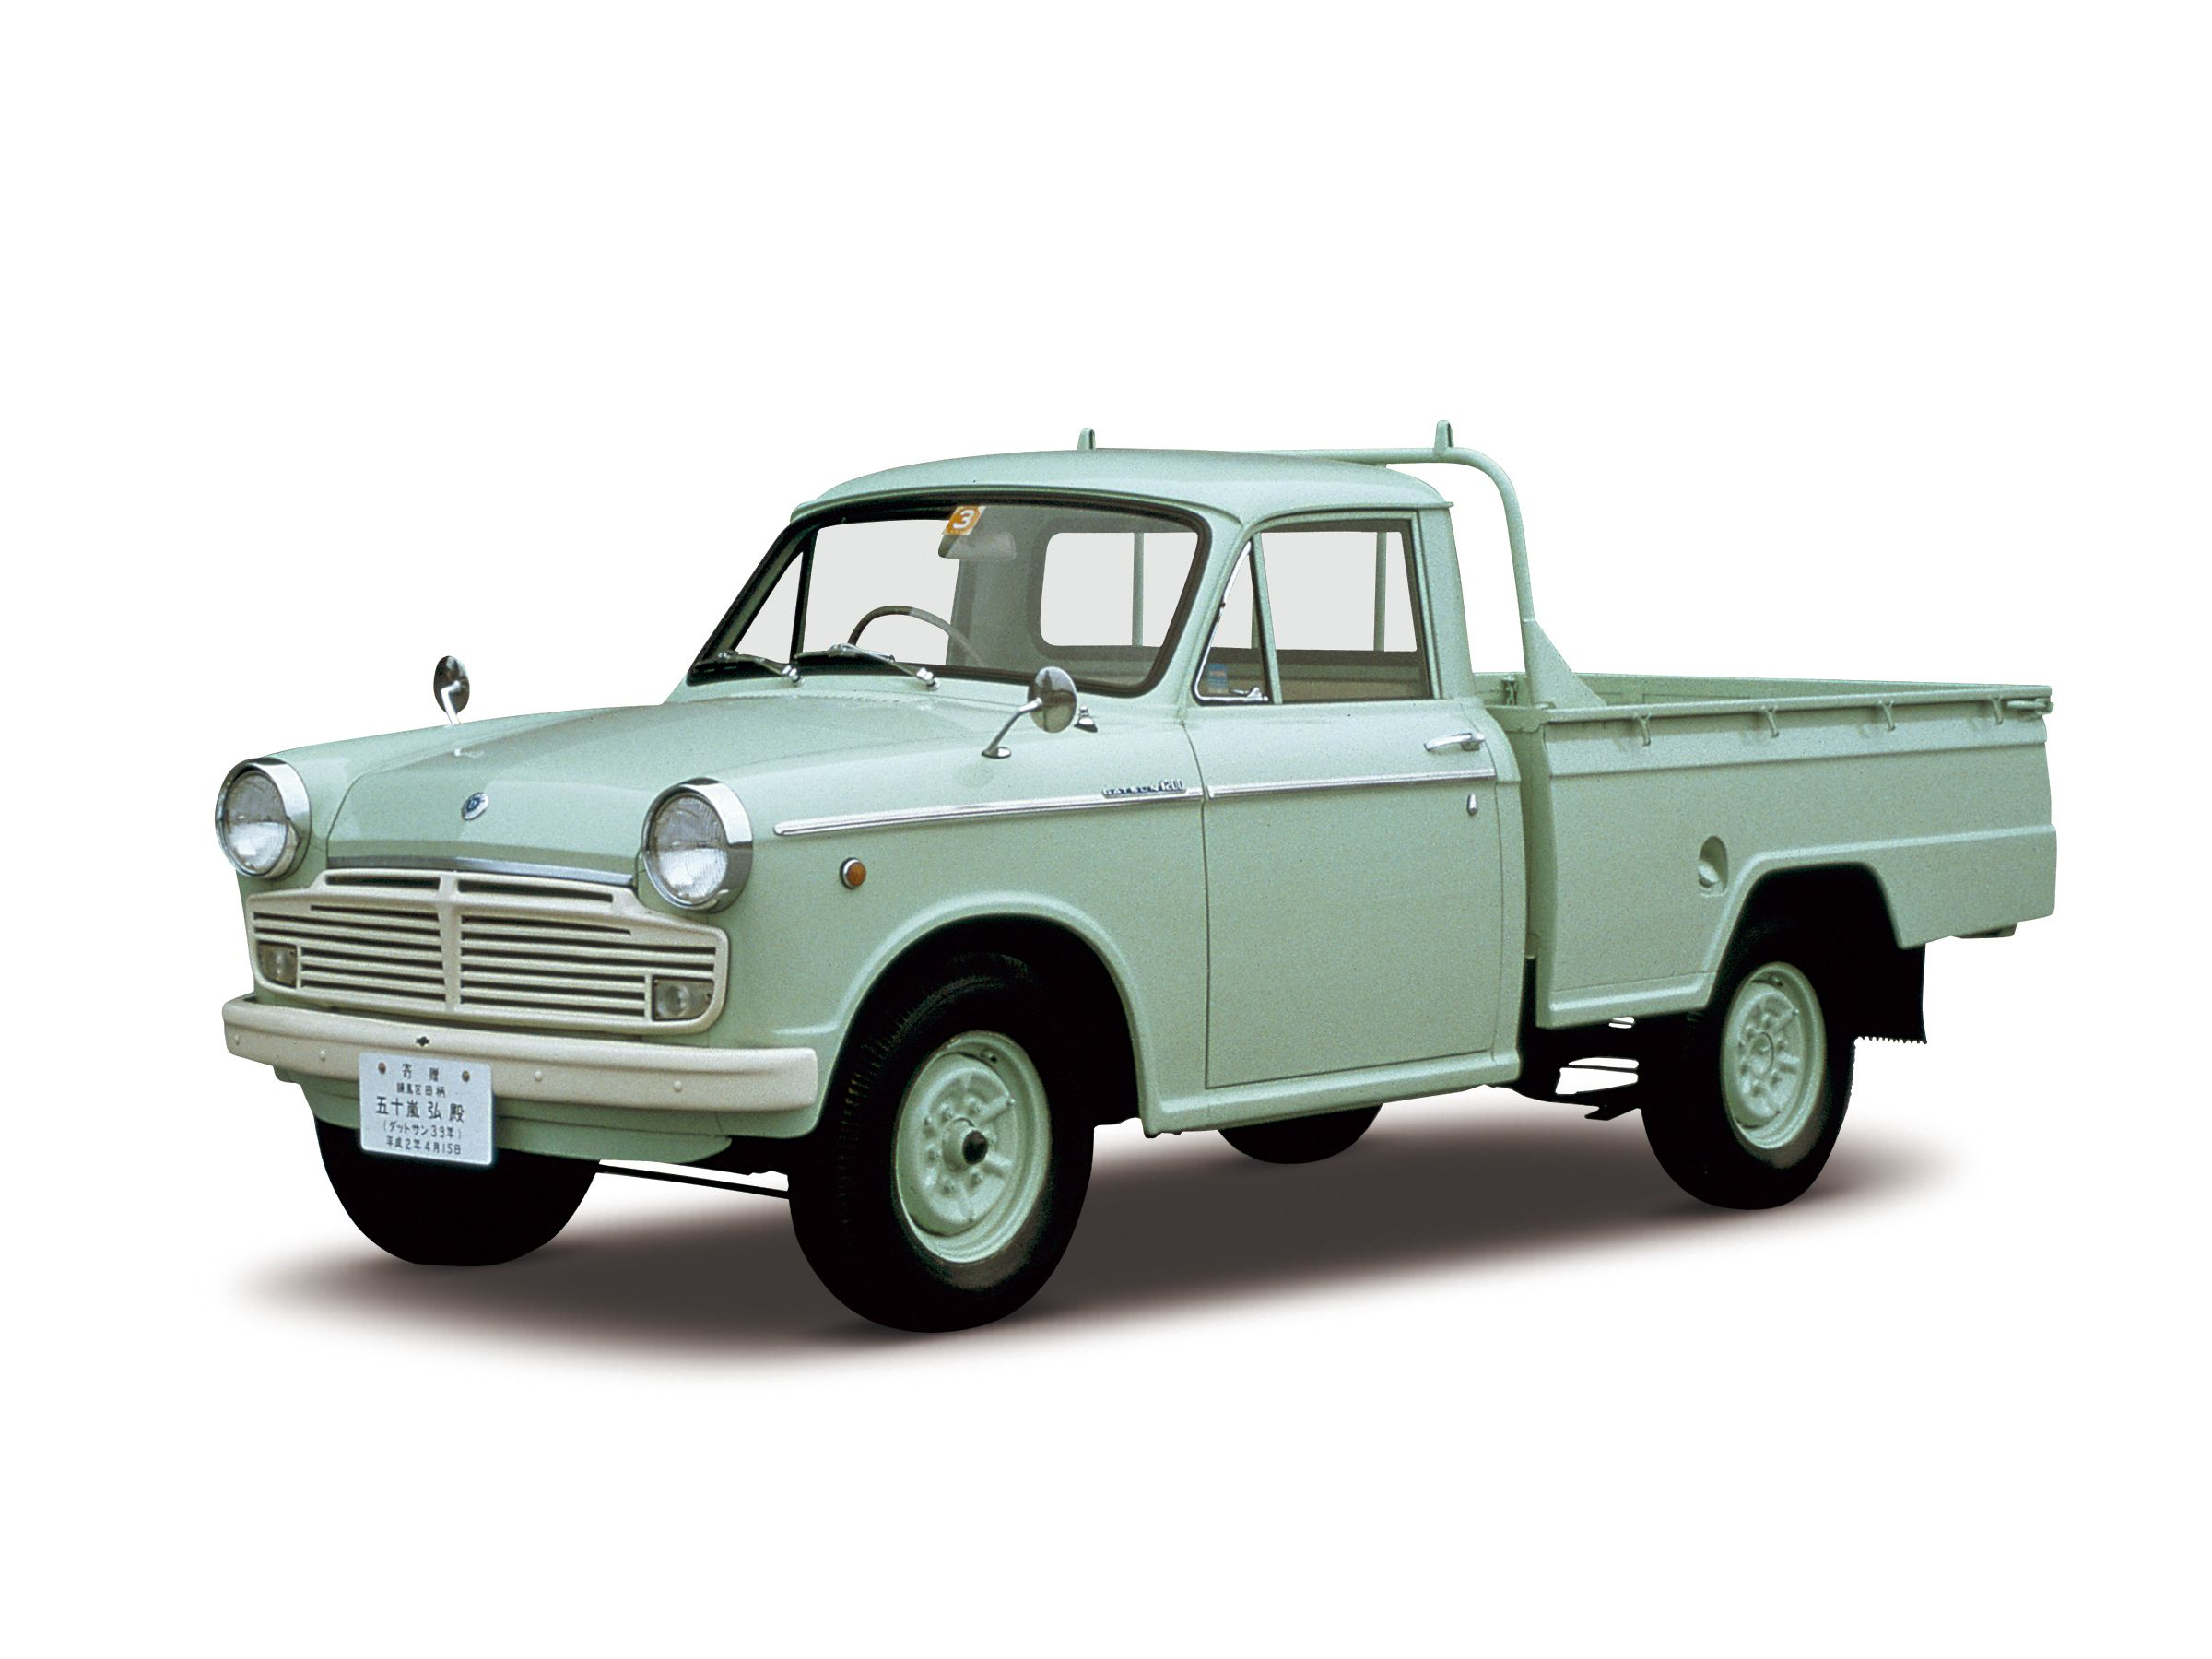 1964 Datsun Truck 1200 Deluxe Released In August 1961 The Datsun